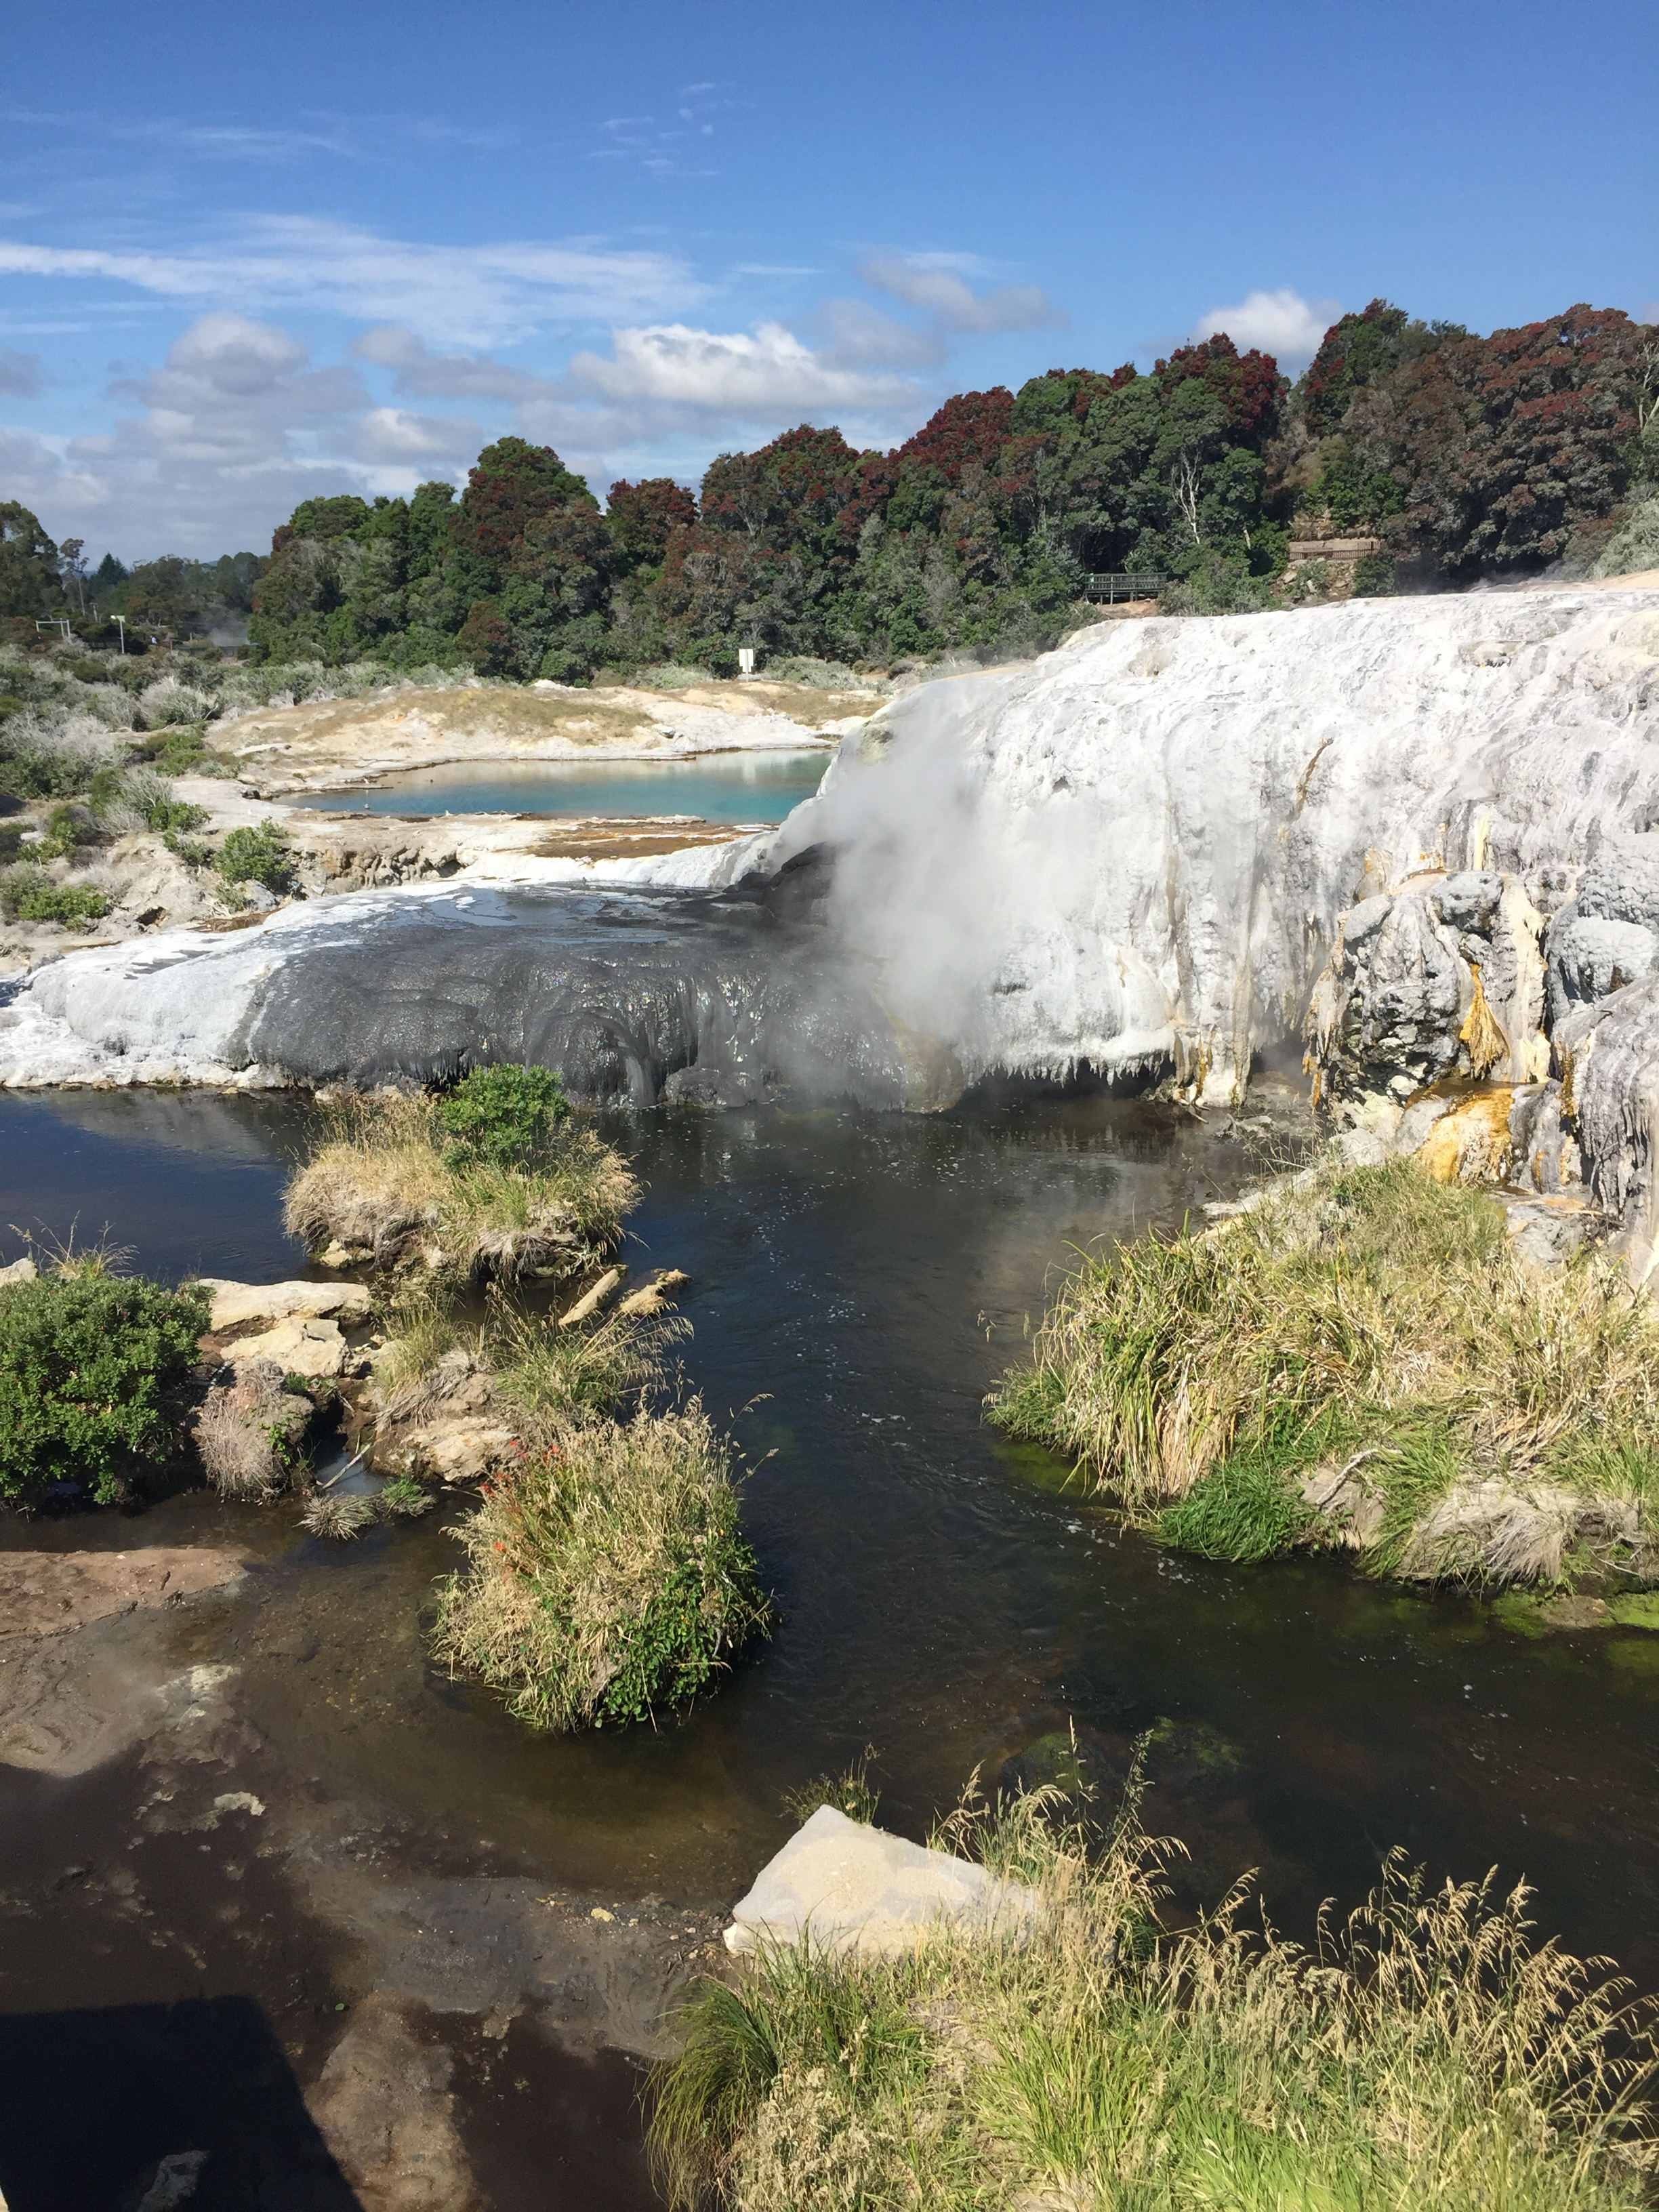 BUBBLING ROTORUA - COMPLETED: ONGOING